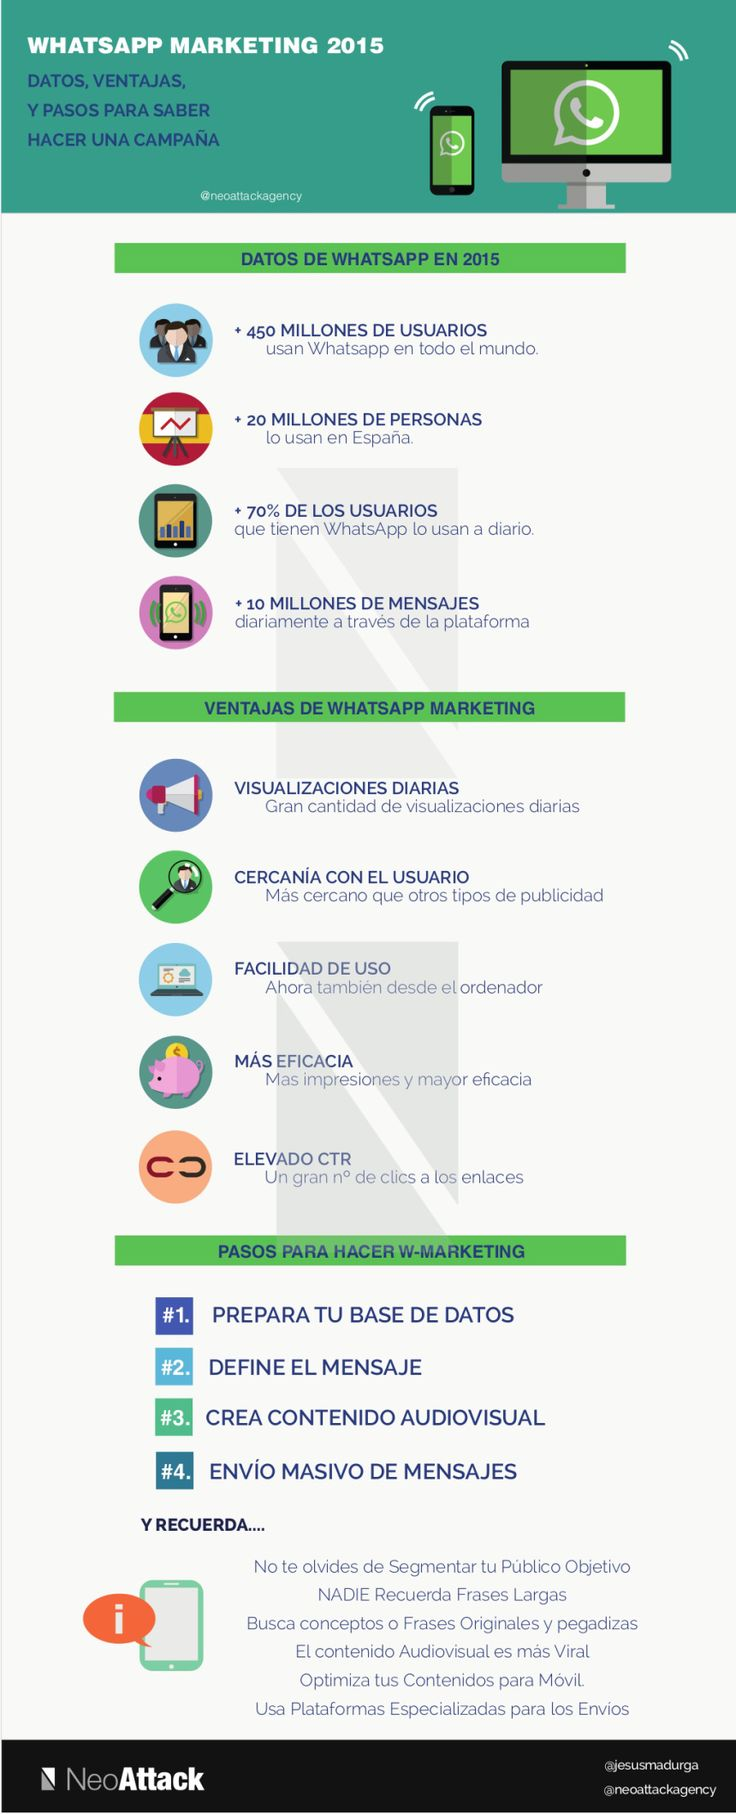 Datos, ventajas y consejos para implantar #WhatsApp #Marketing. #infografia